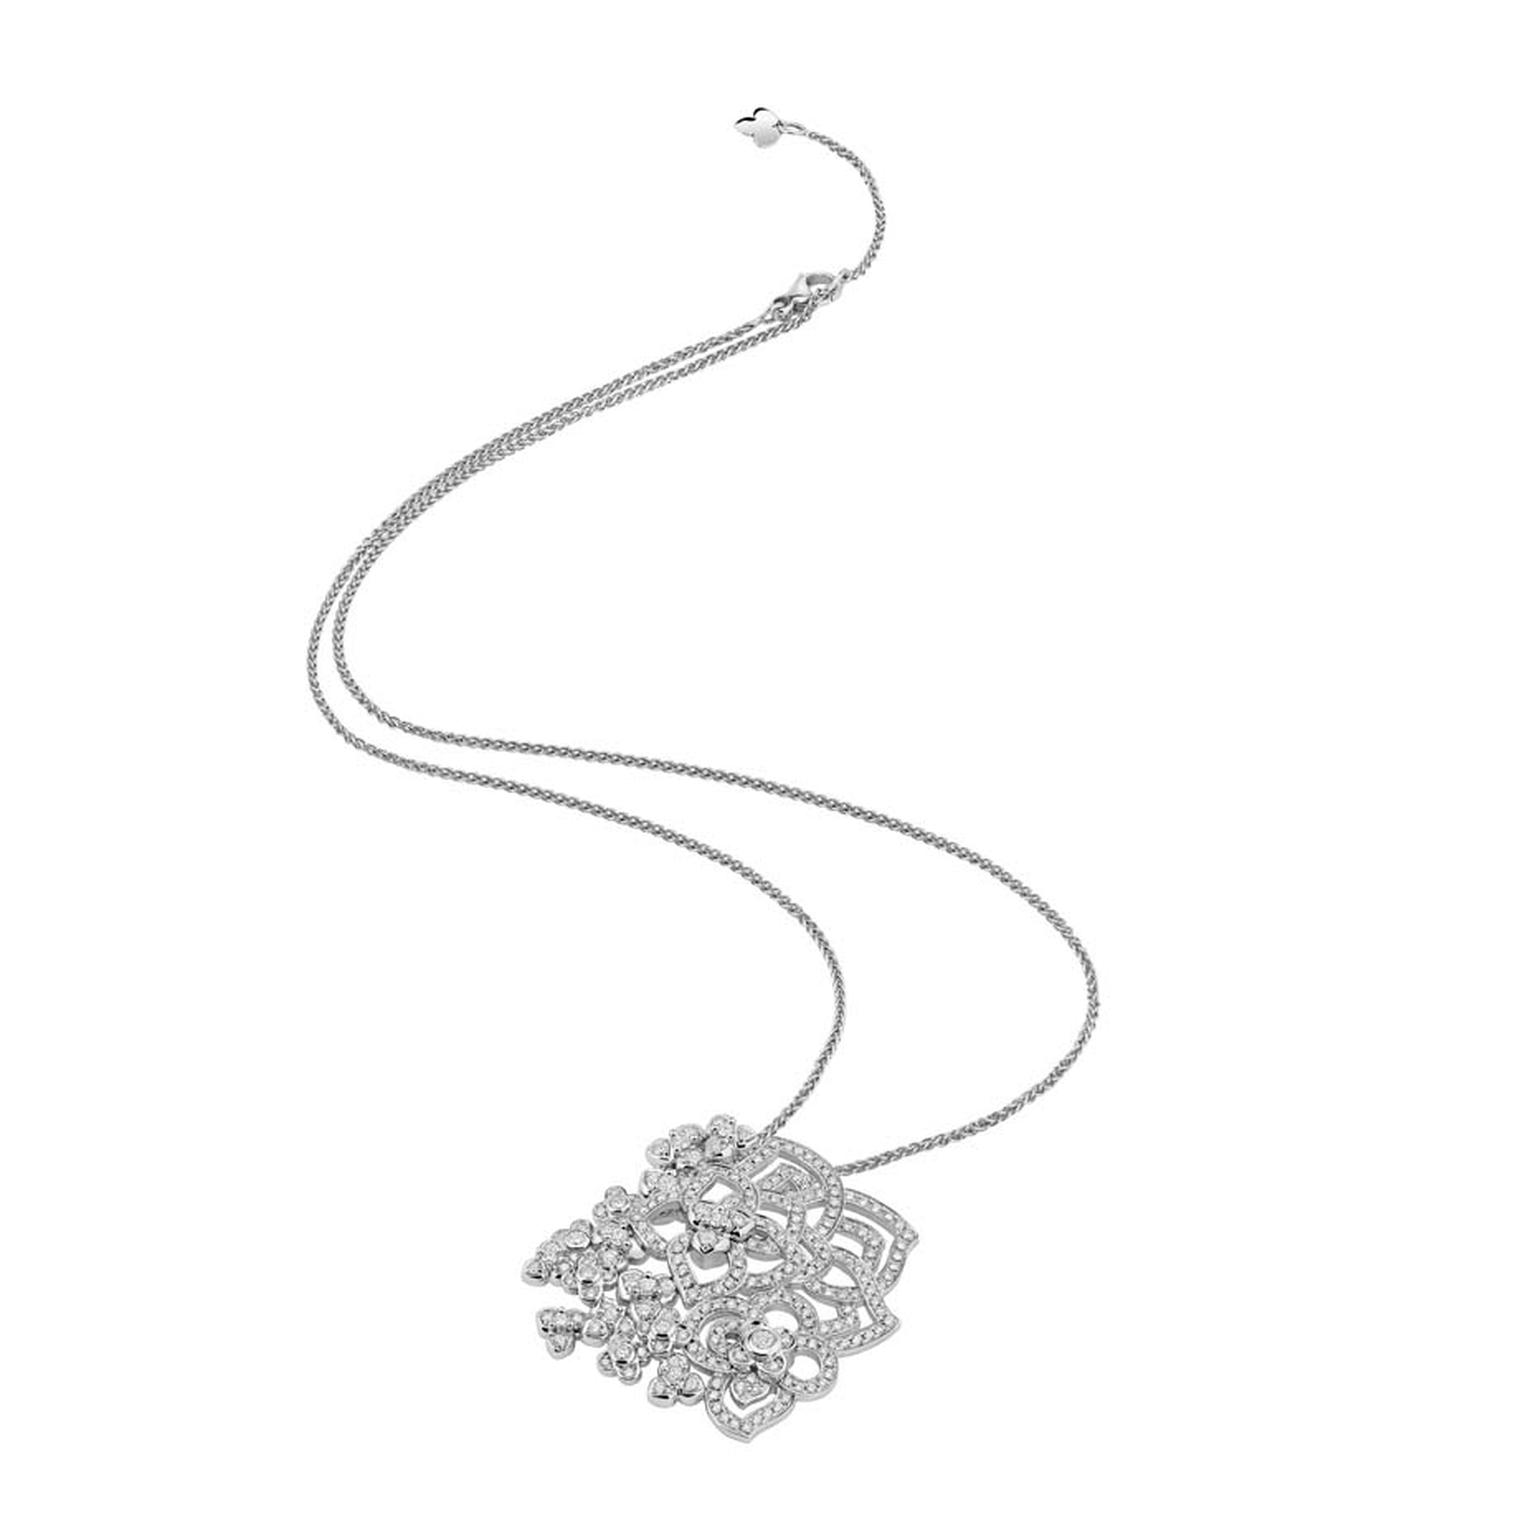 Chaumet Hortensia white gold pendant necklace set with 232 brilliant-cut diamonds.